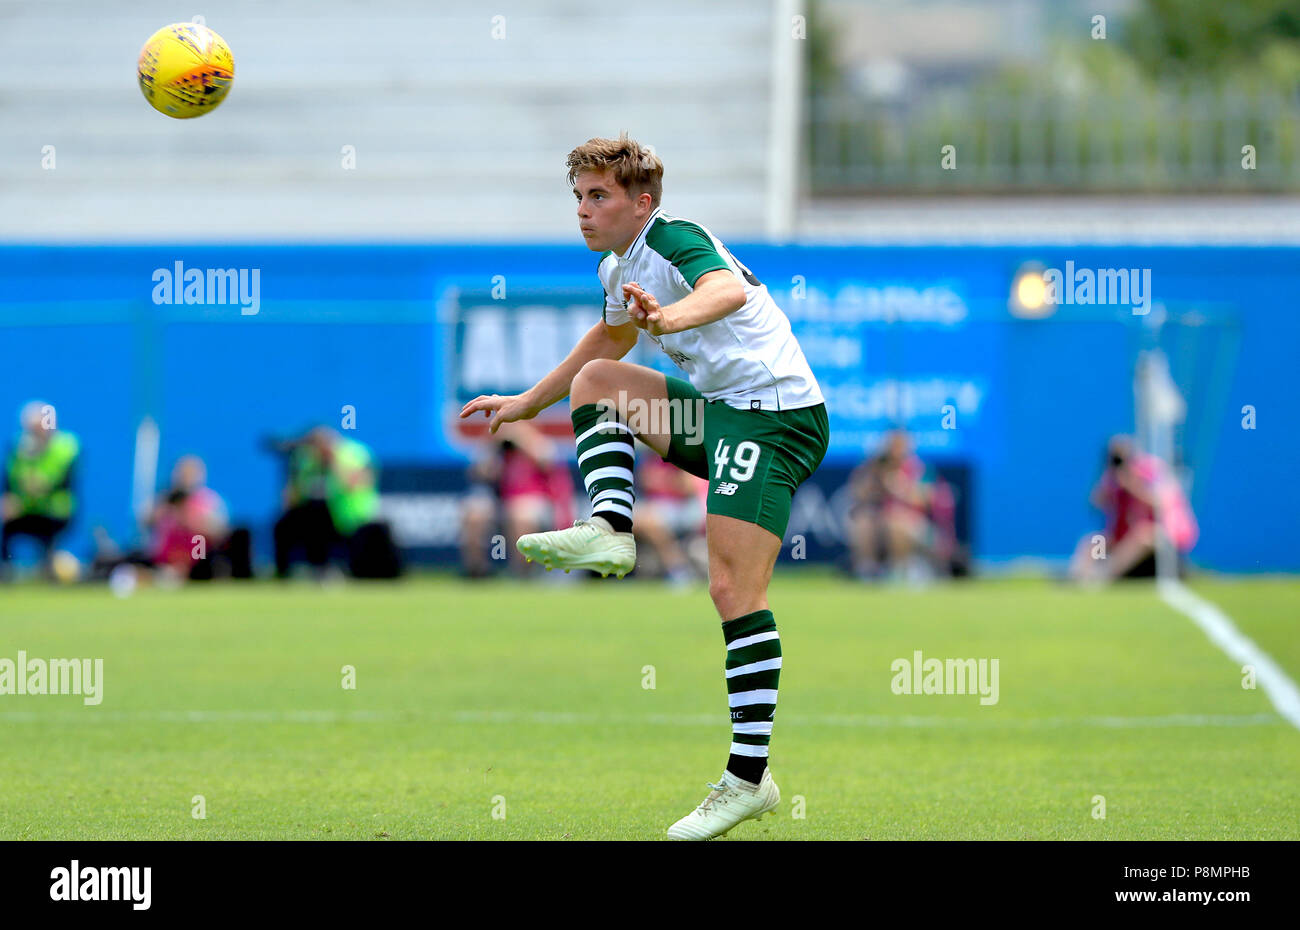 Celtic's James Forrest during the pre-season friendly match at the Tallaght Stadium. - Stock Image